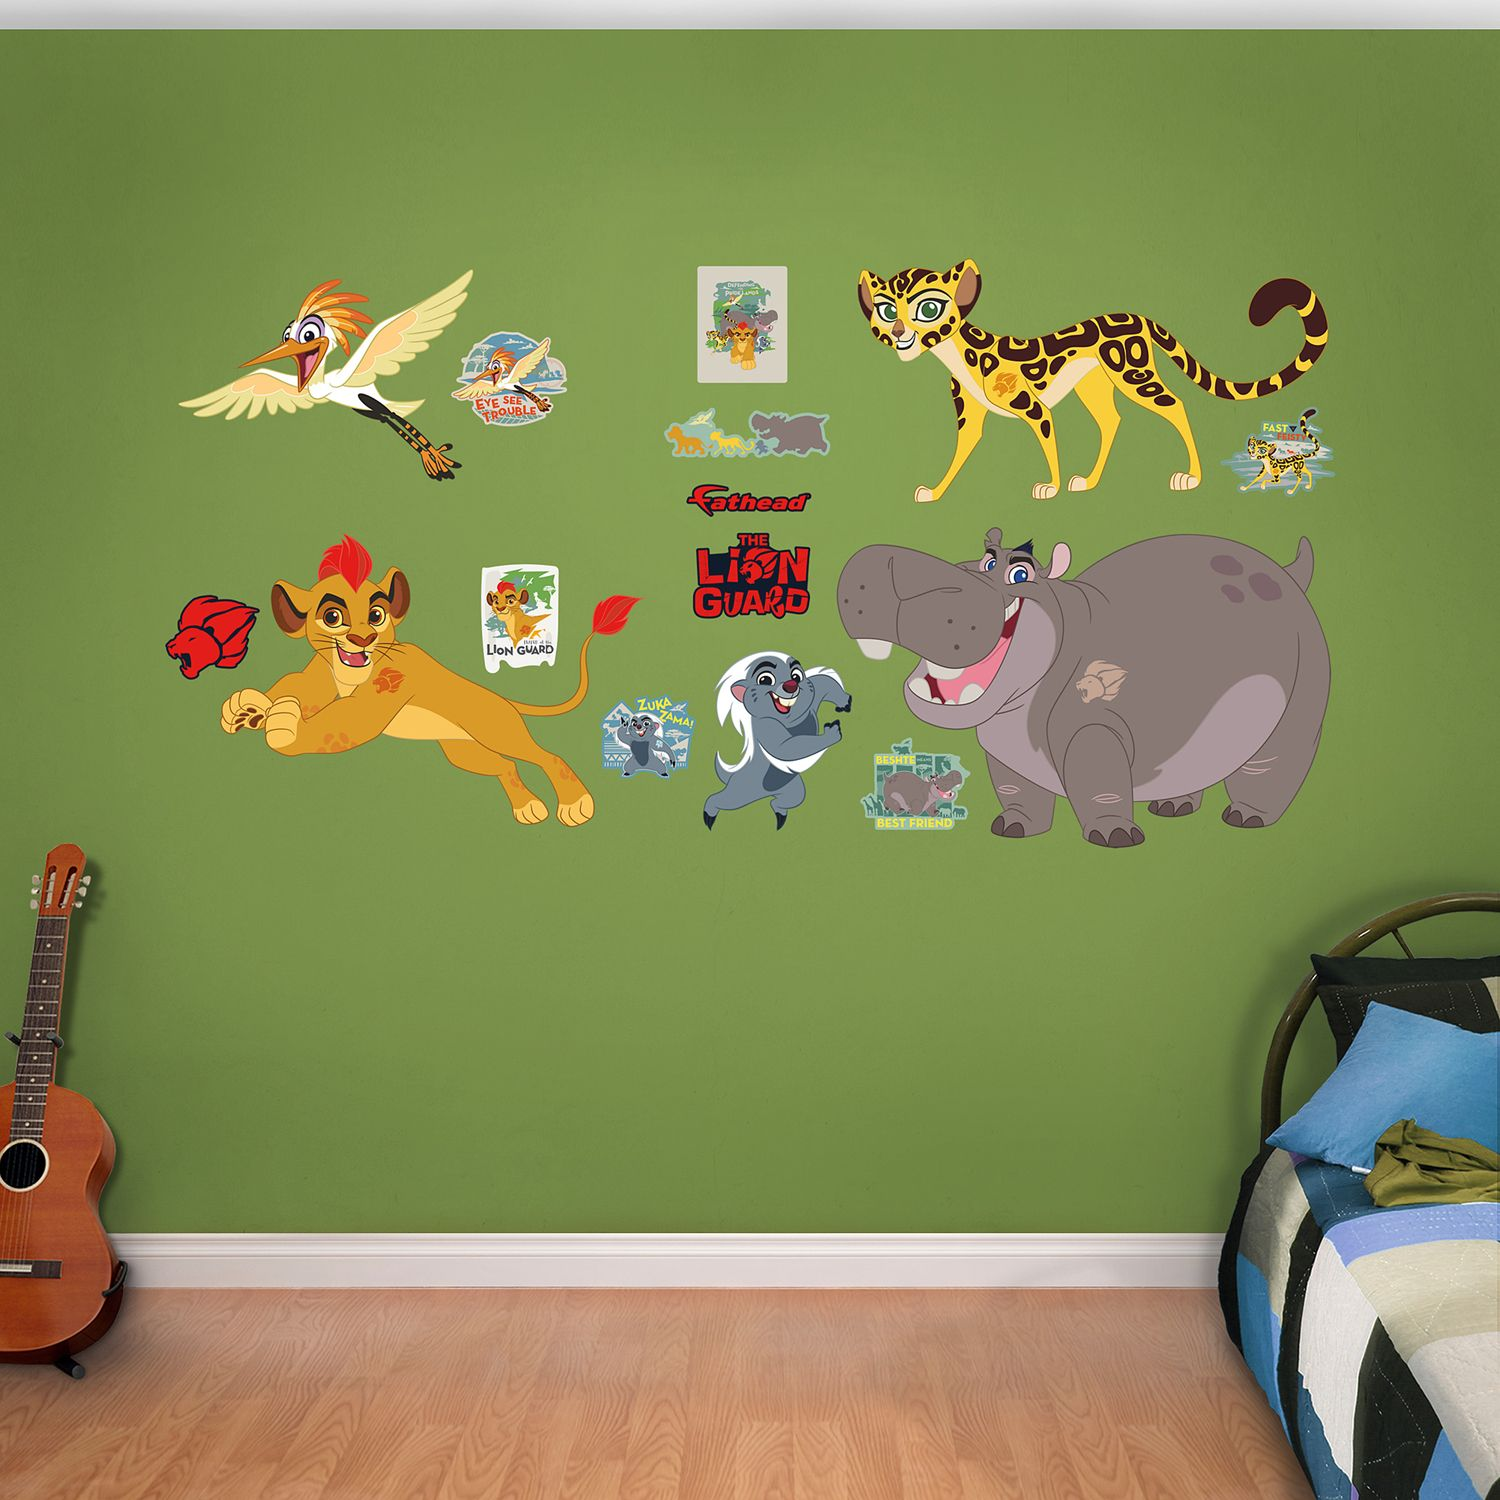 Disneyu0027s The Lion Guard Wall Decal By Fathead